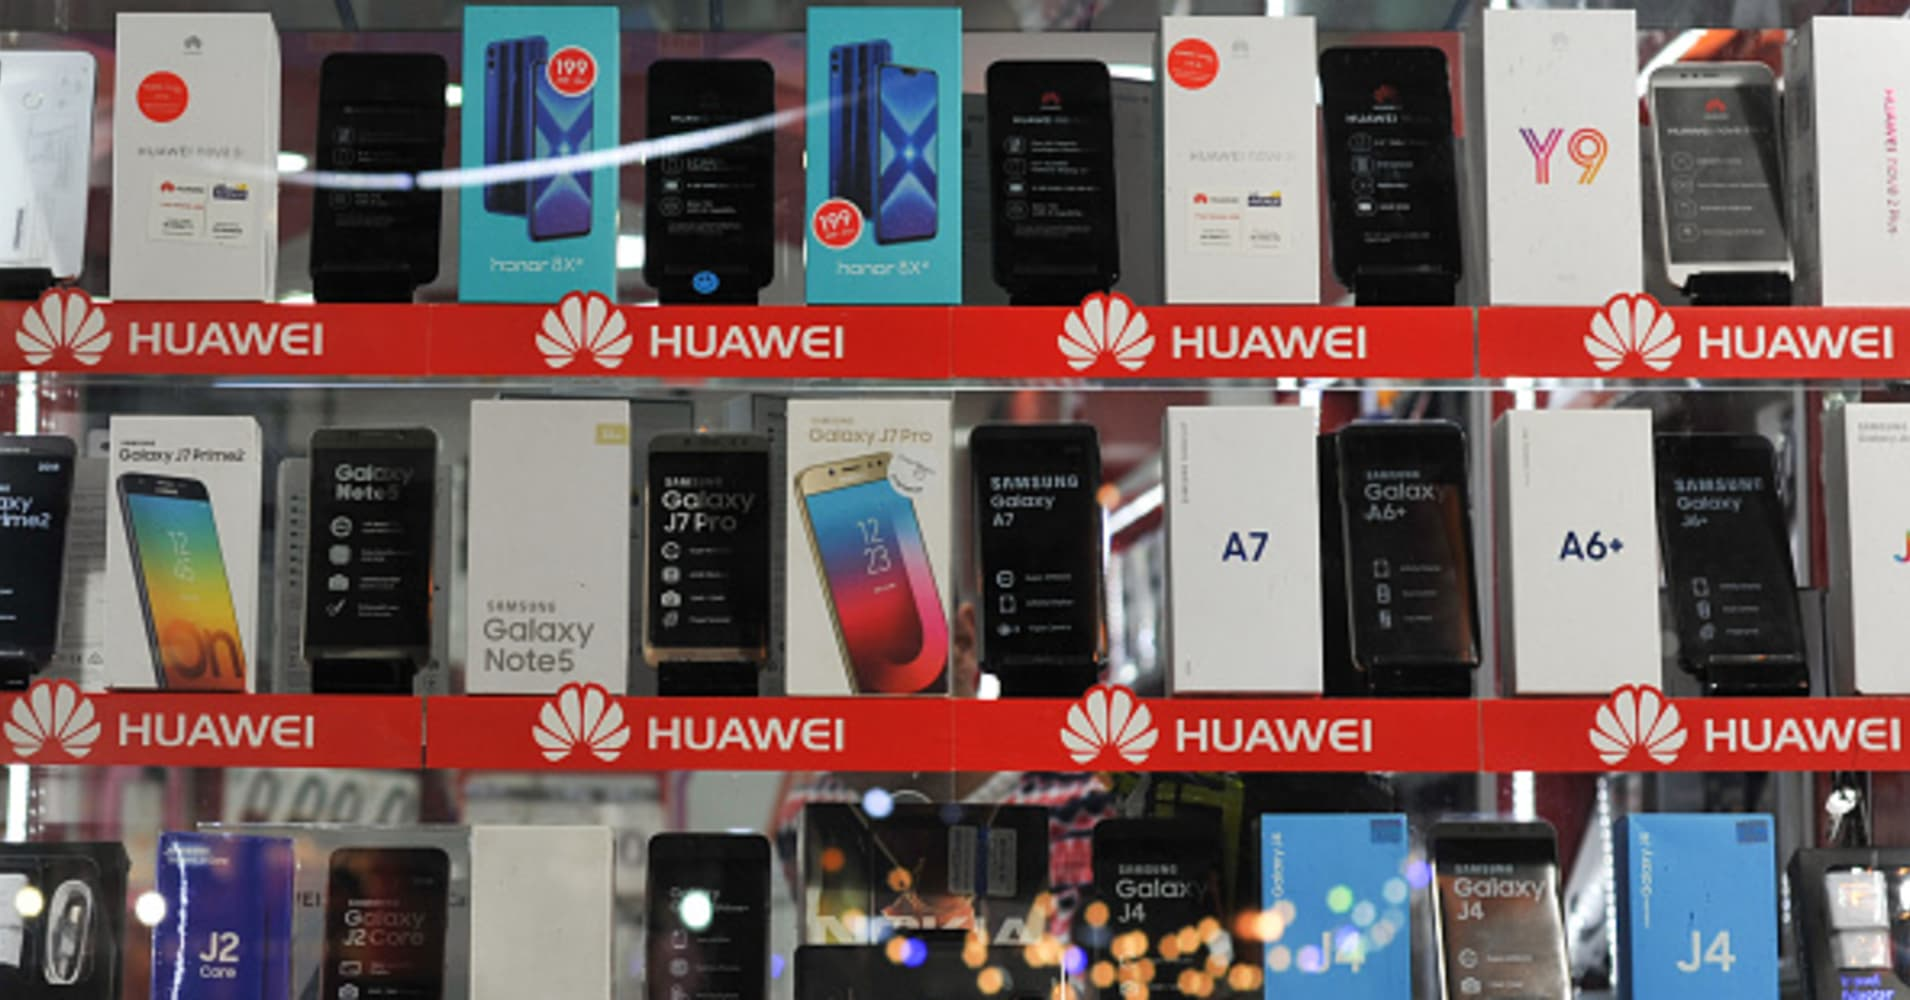 Thailand launches Huawei 5G test bed, even as US urges allies to bar Chinese gear